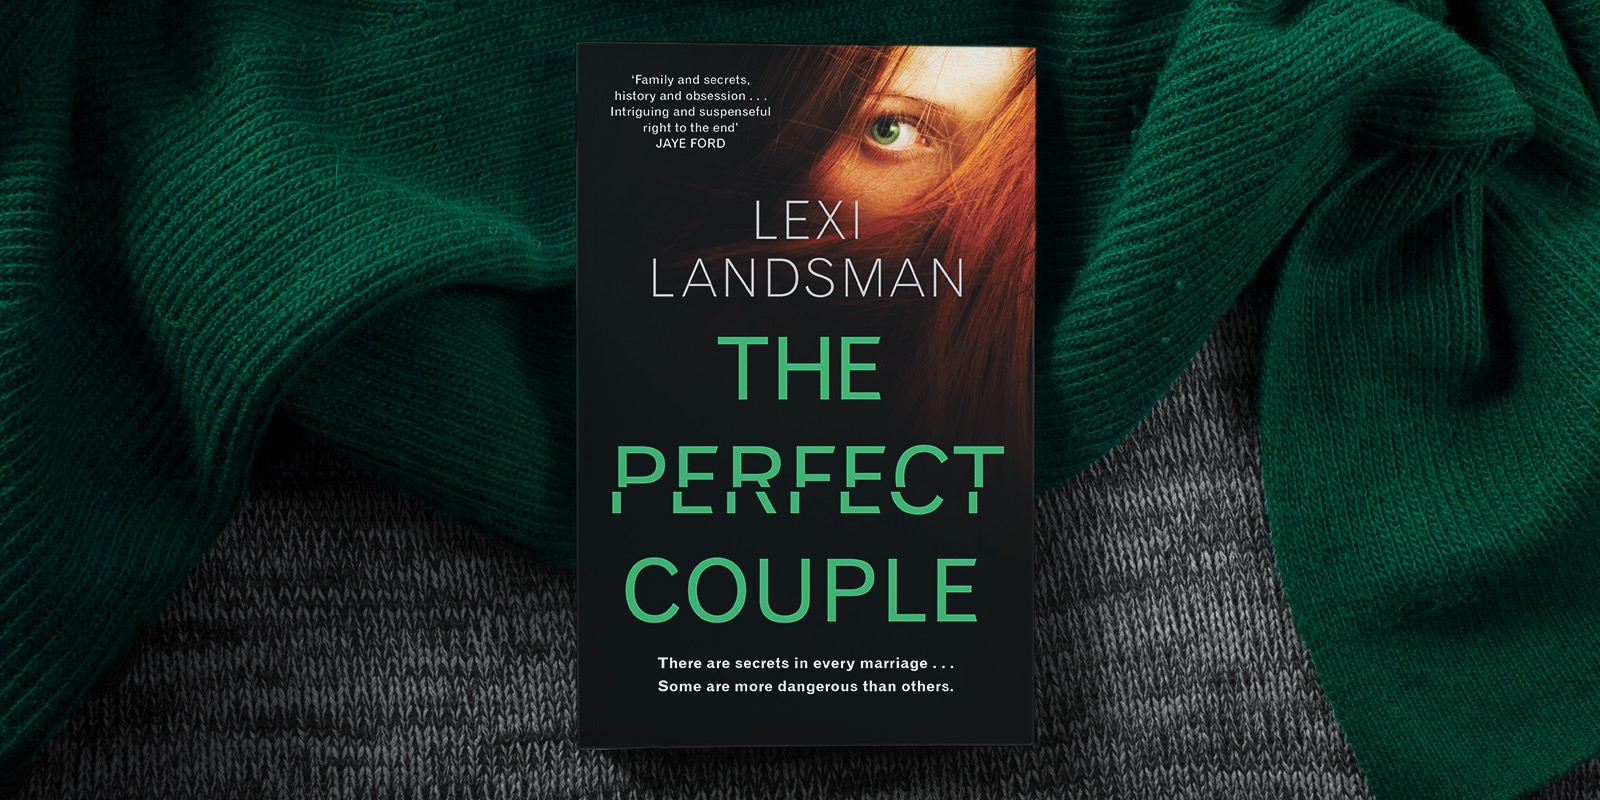 The Perfect Couple by Lexi Landsman.